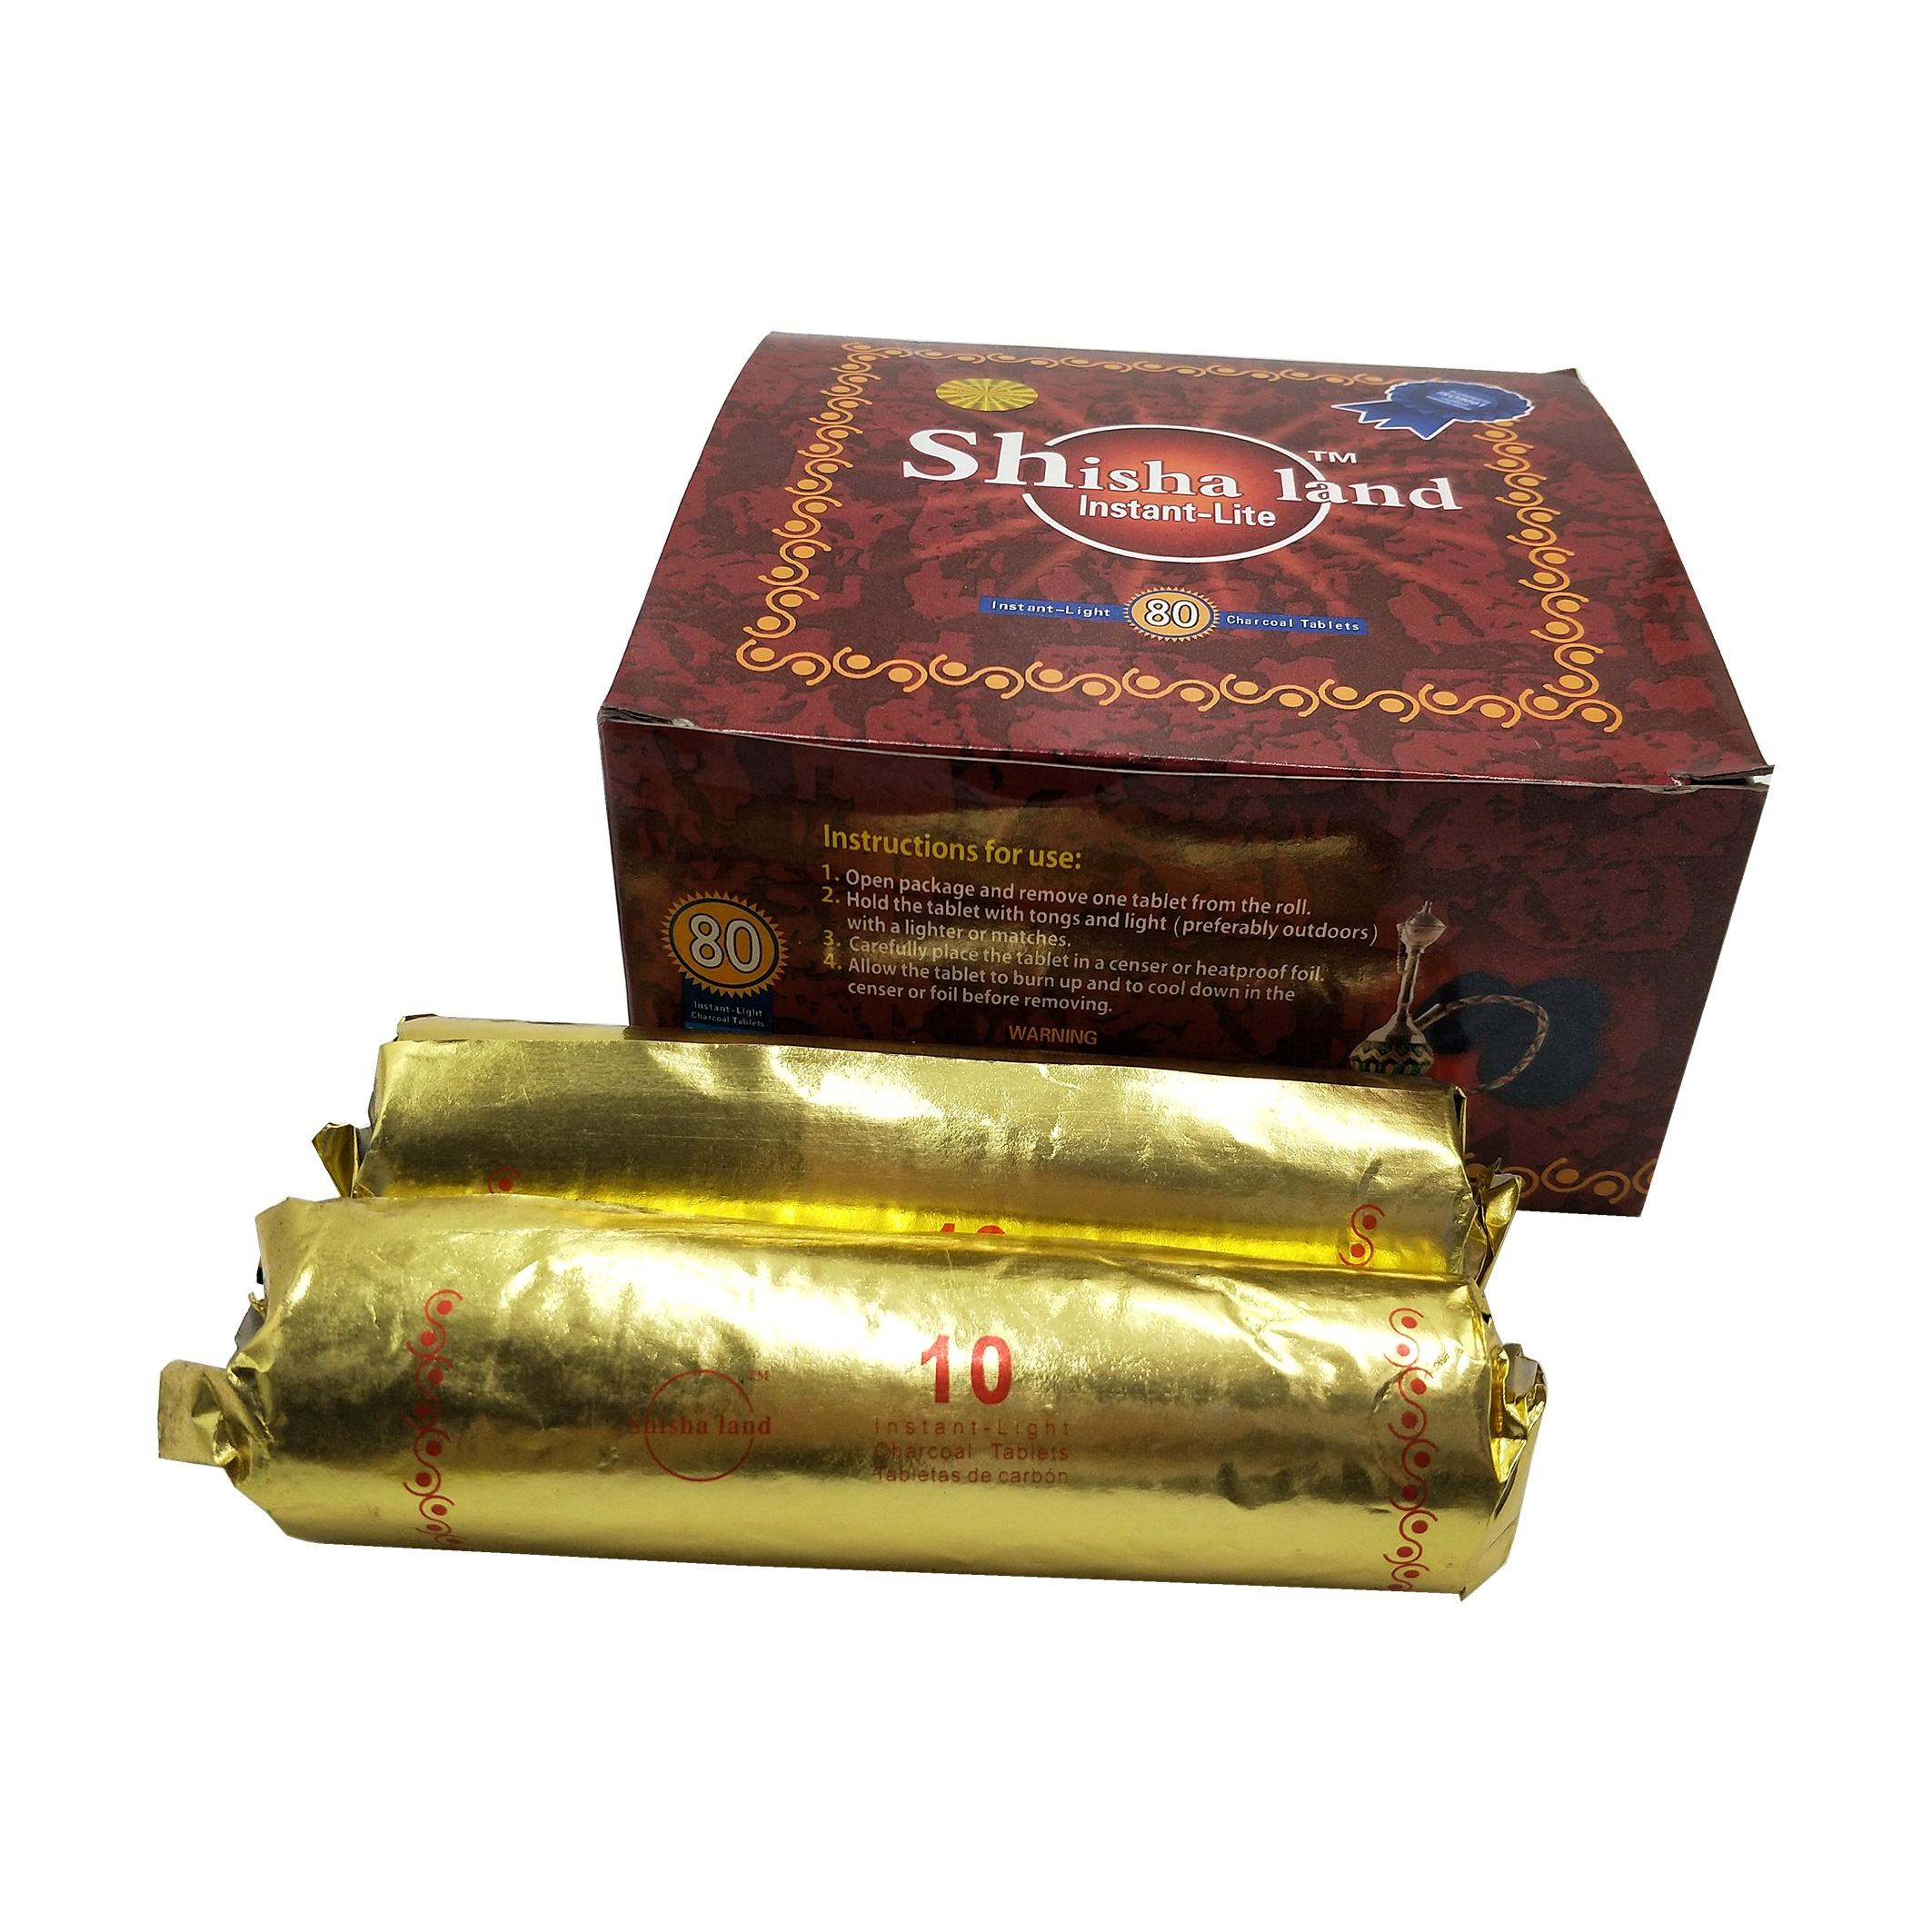 Gold Star 40 Mm Shisha Charcoal 10 Roll 100 pieces AUTHENTIC